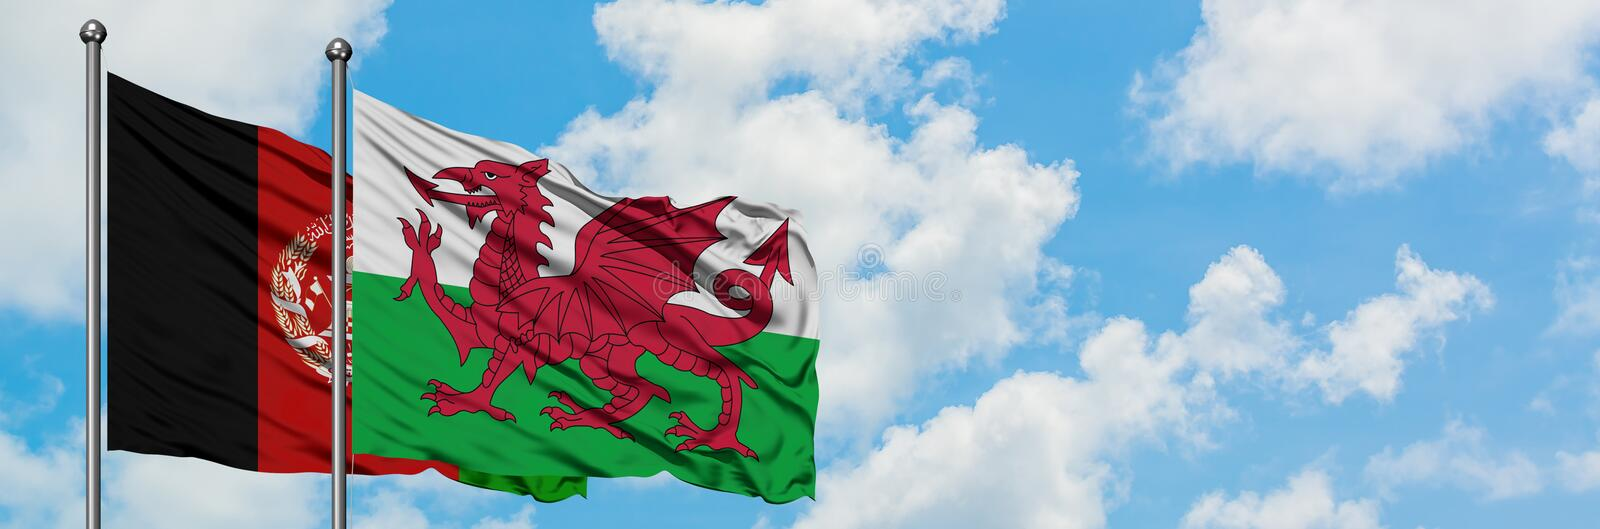 Afghanistan and Wales flag waving in the wind against white cloudy blue sky together. Diplomacy concept, international relations.  royalty free stock photos